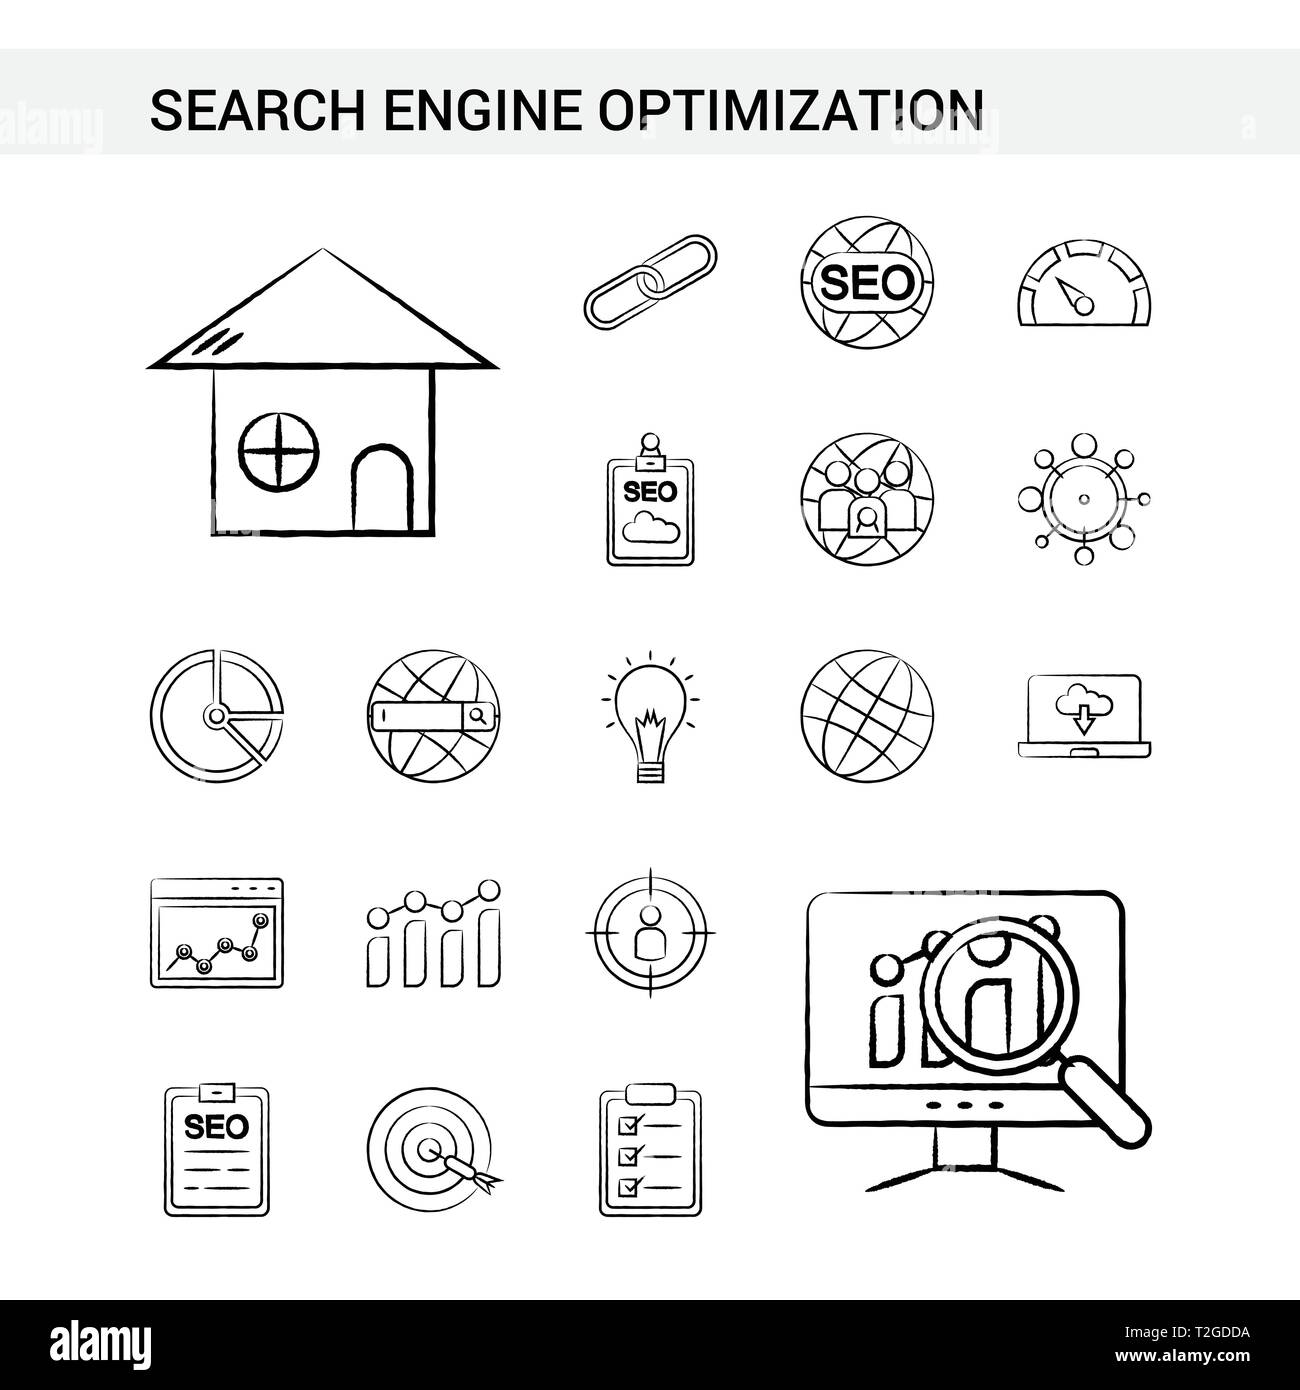 Search Engine Optimization hand drawn Icon set style